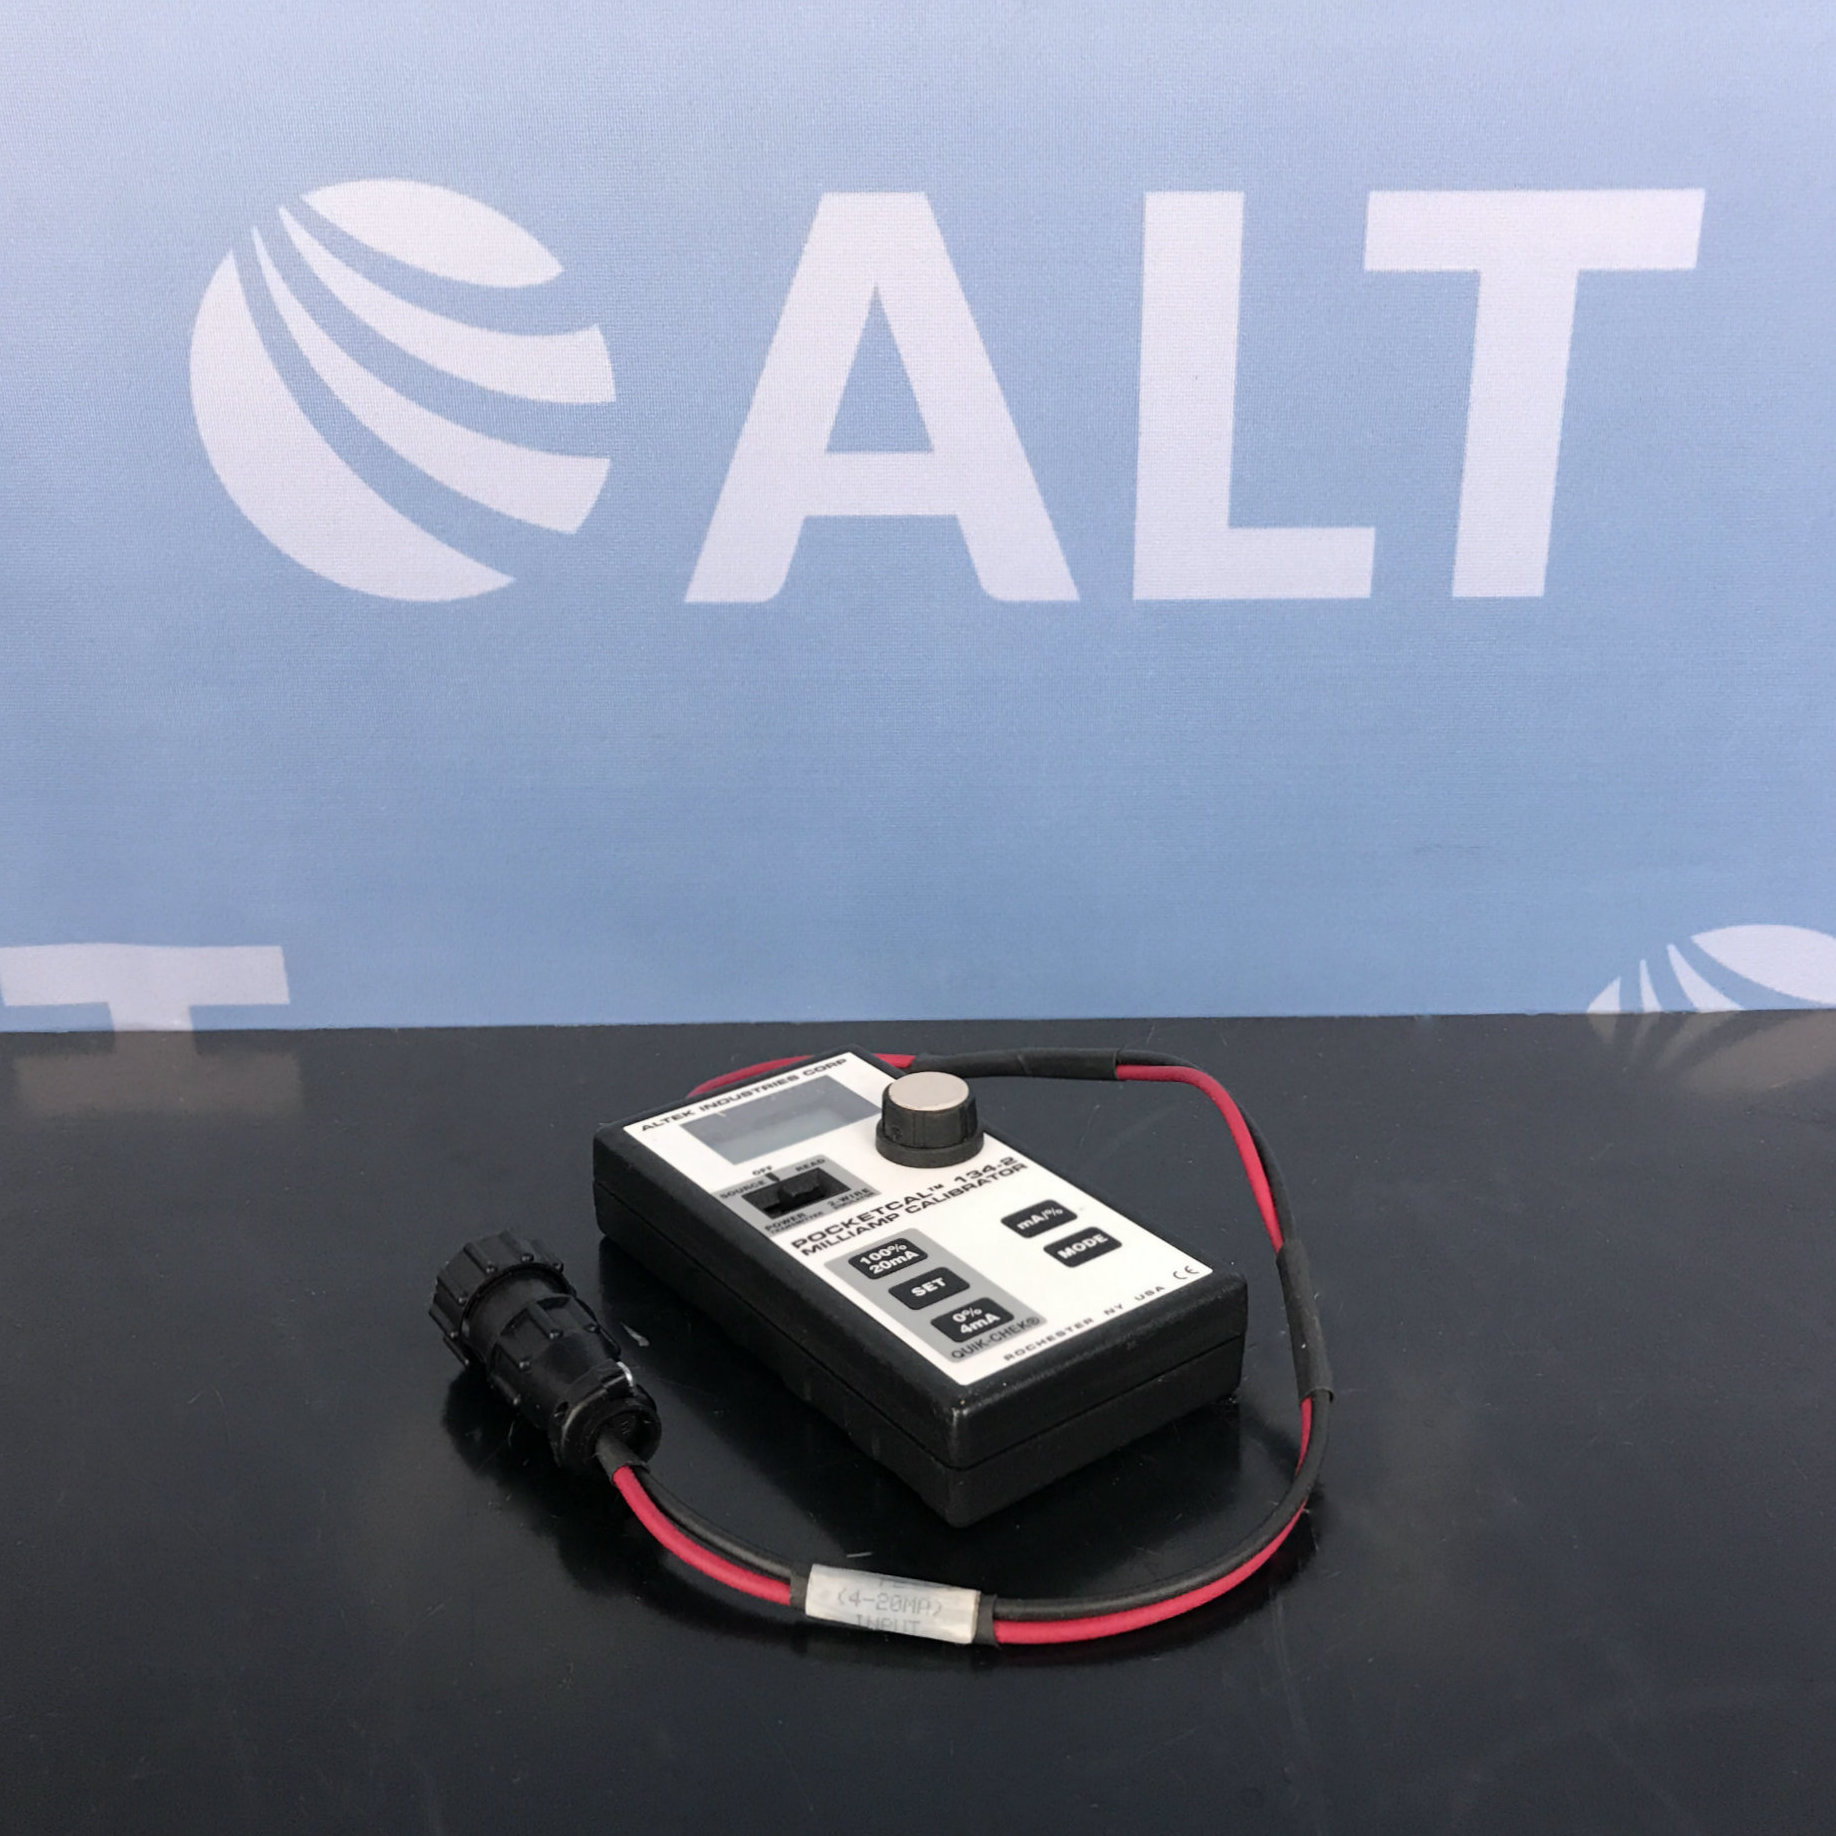 Altek 134-2 POCKETCAL Milliamp Calibrator Image